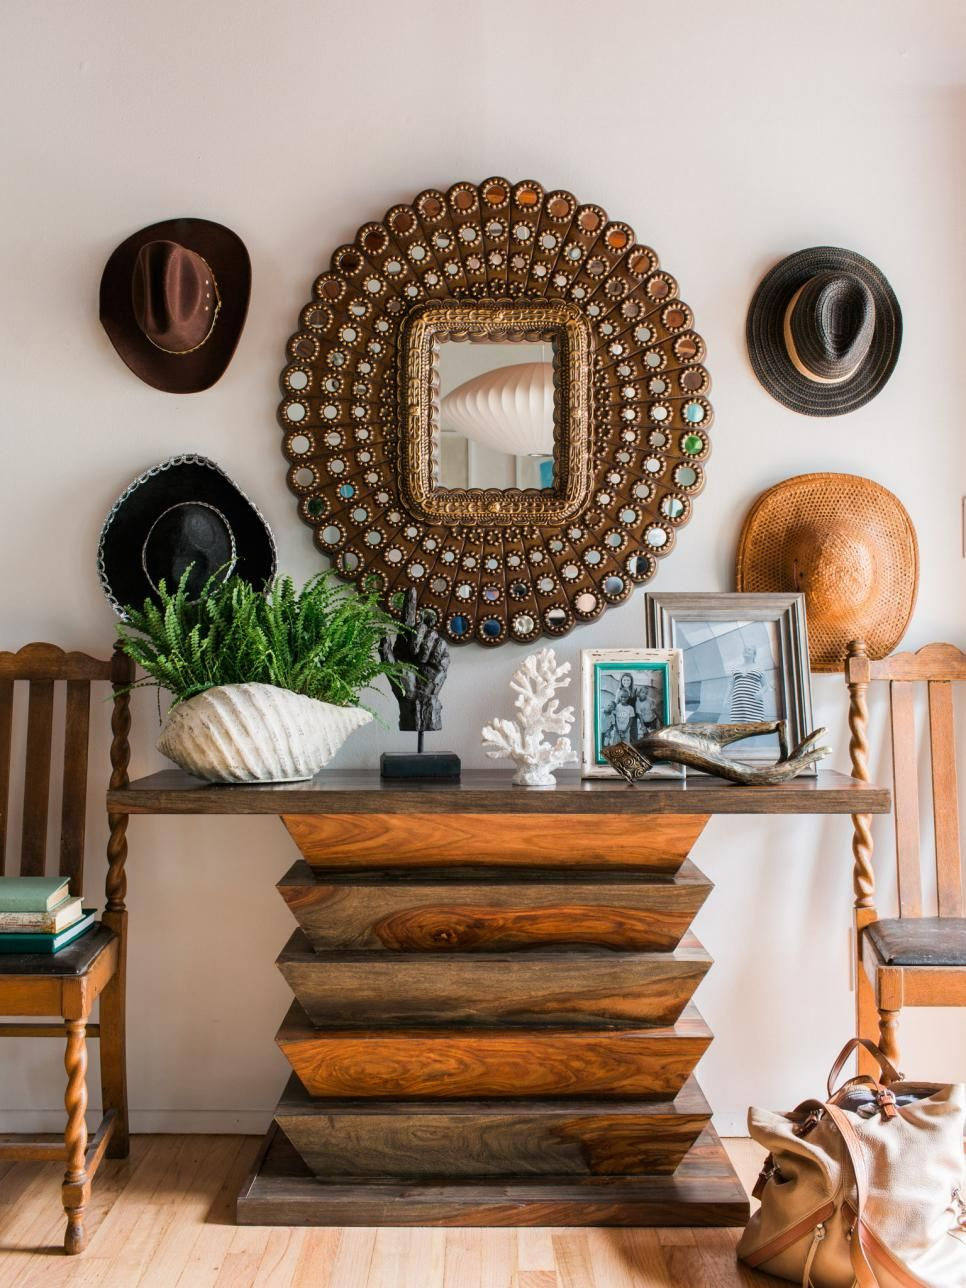 13 Ways to Decorate With Texture | 2016 | HGTV >> http ...